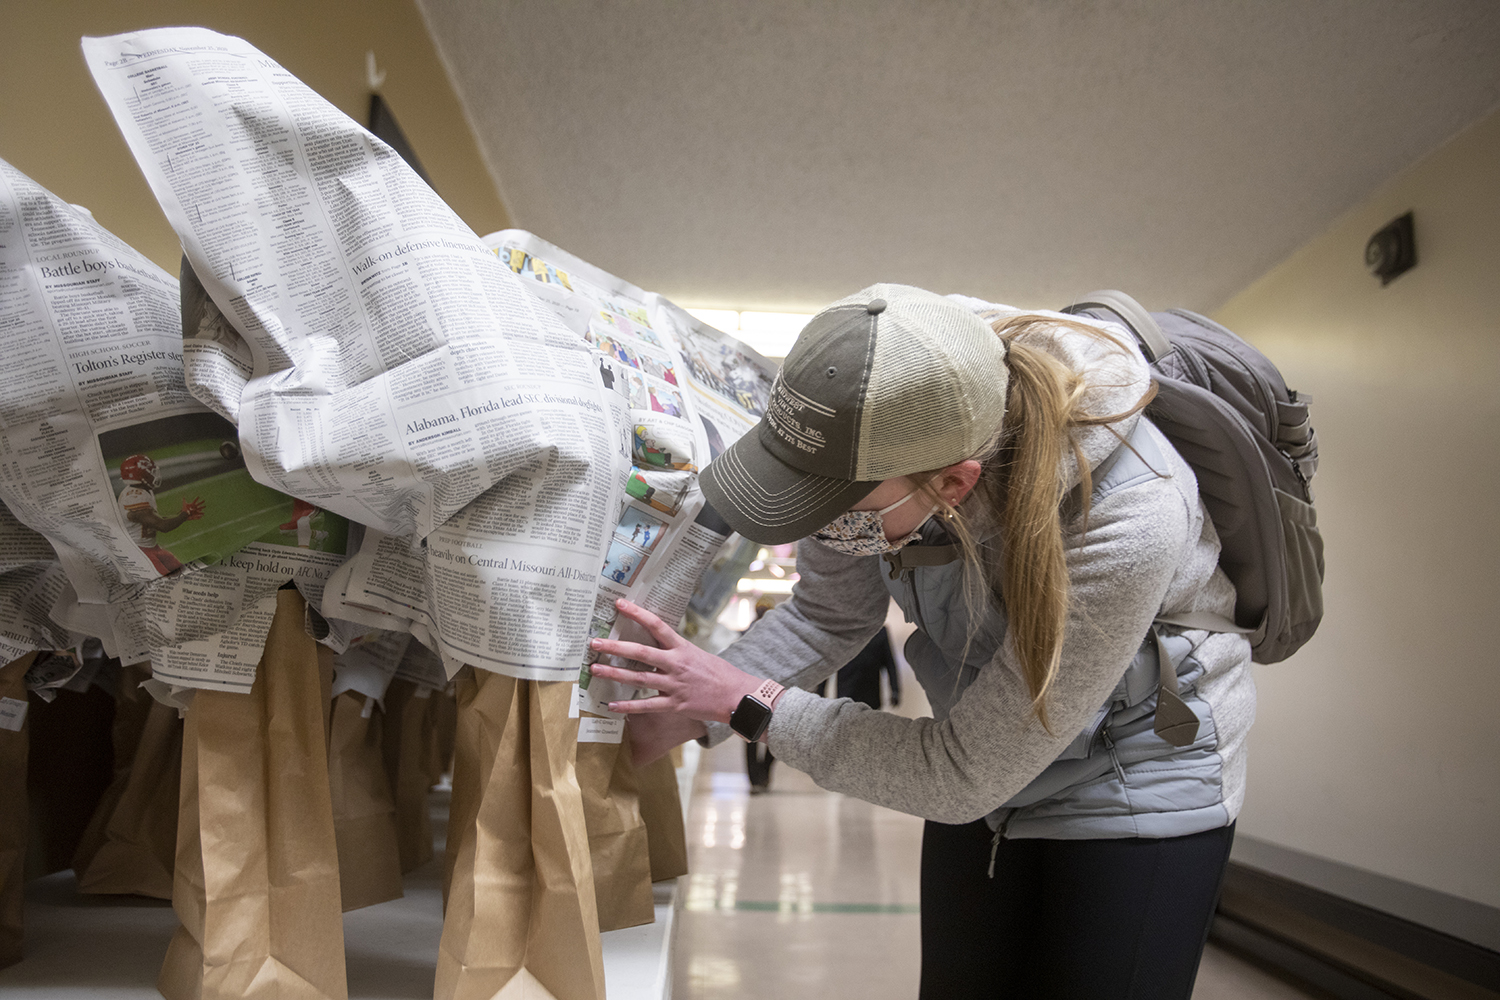 Chloe Sims, a freshman Animal Science major from Mexico, Missouri, searches for her pickup order outside Tiger Garden.